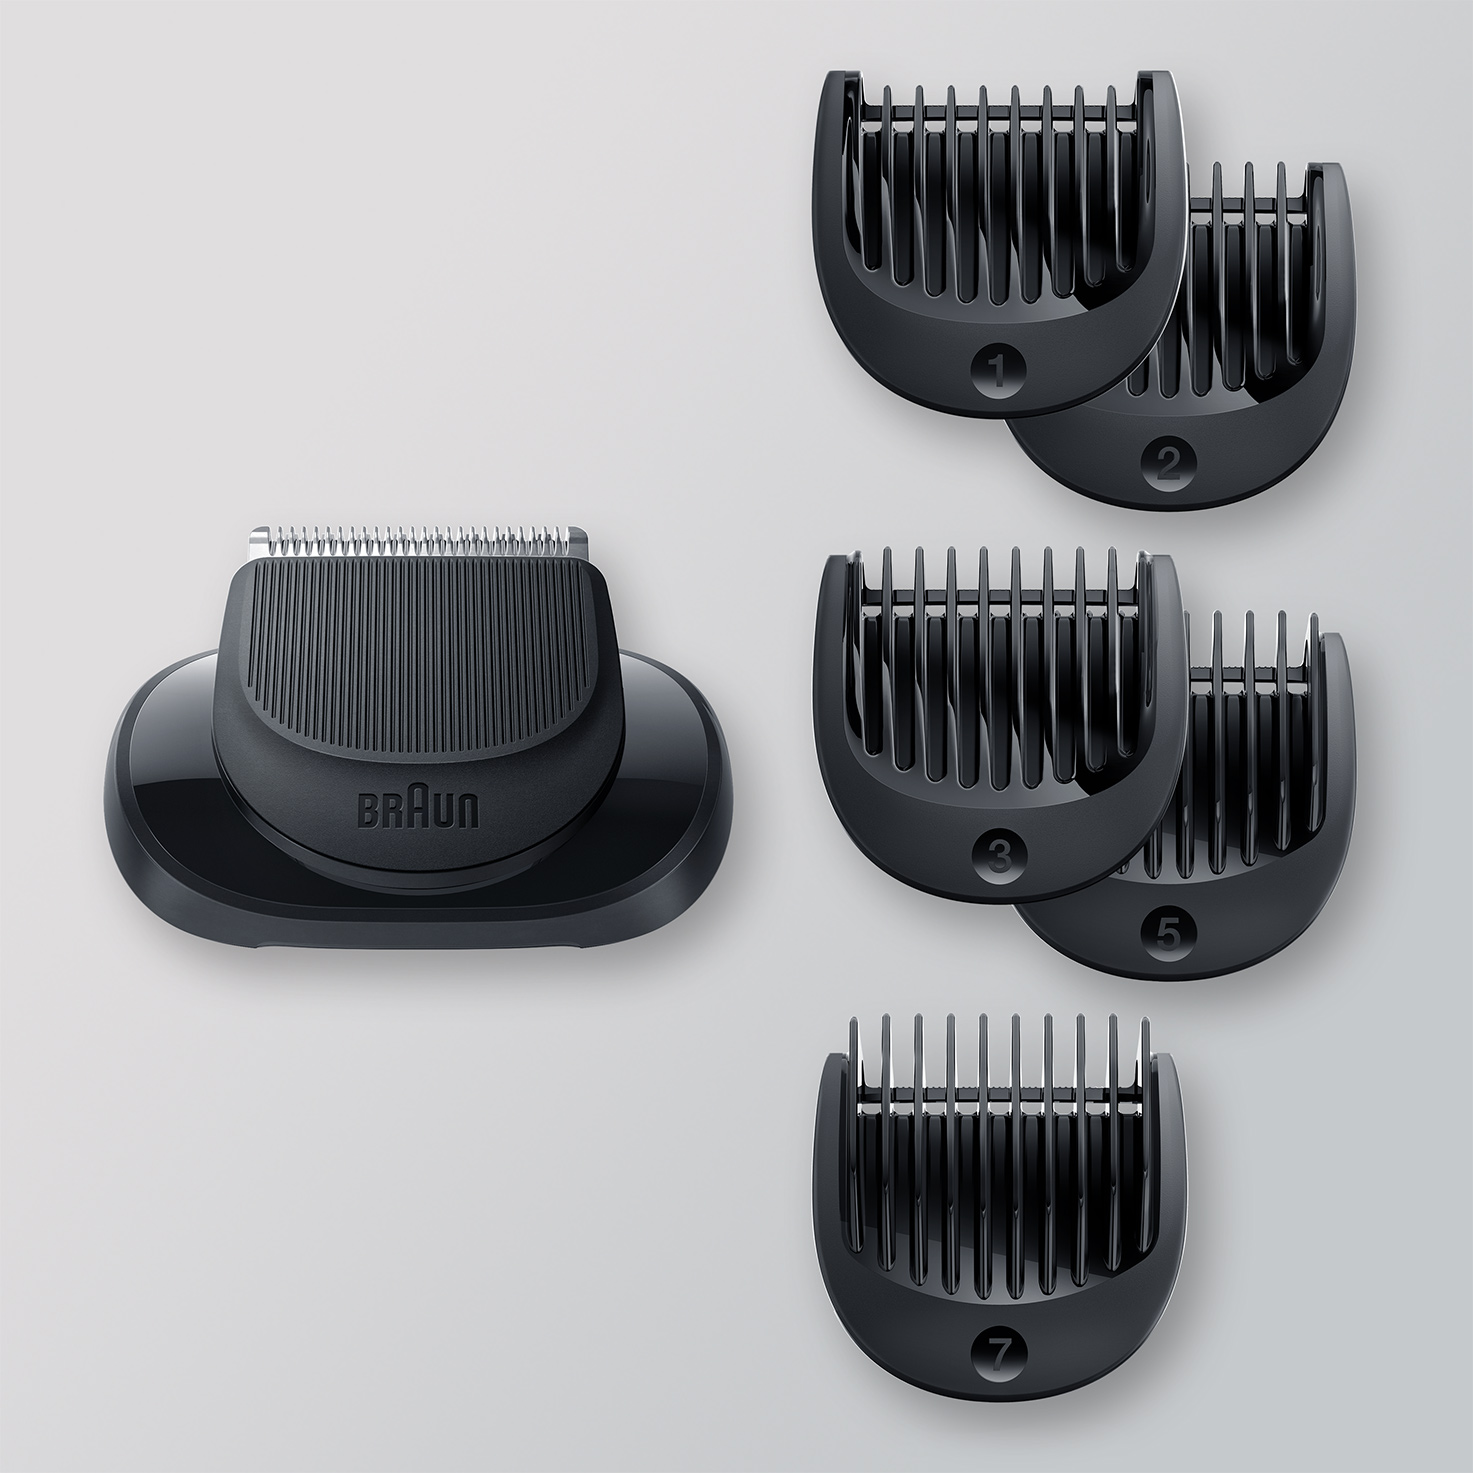 EasyClick Beard Trimmer attachment for Braun Series 5, 6 and 7 electric shaver (New generation).